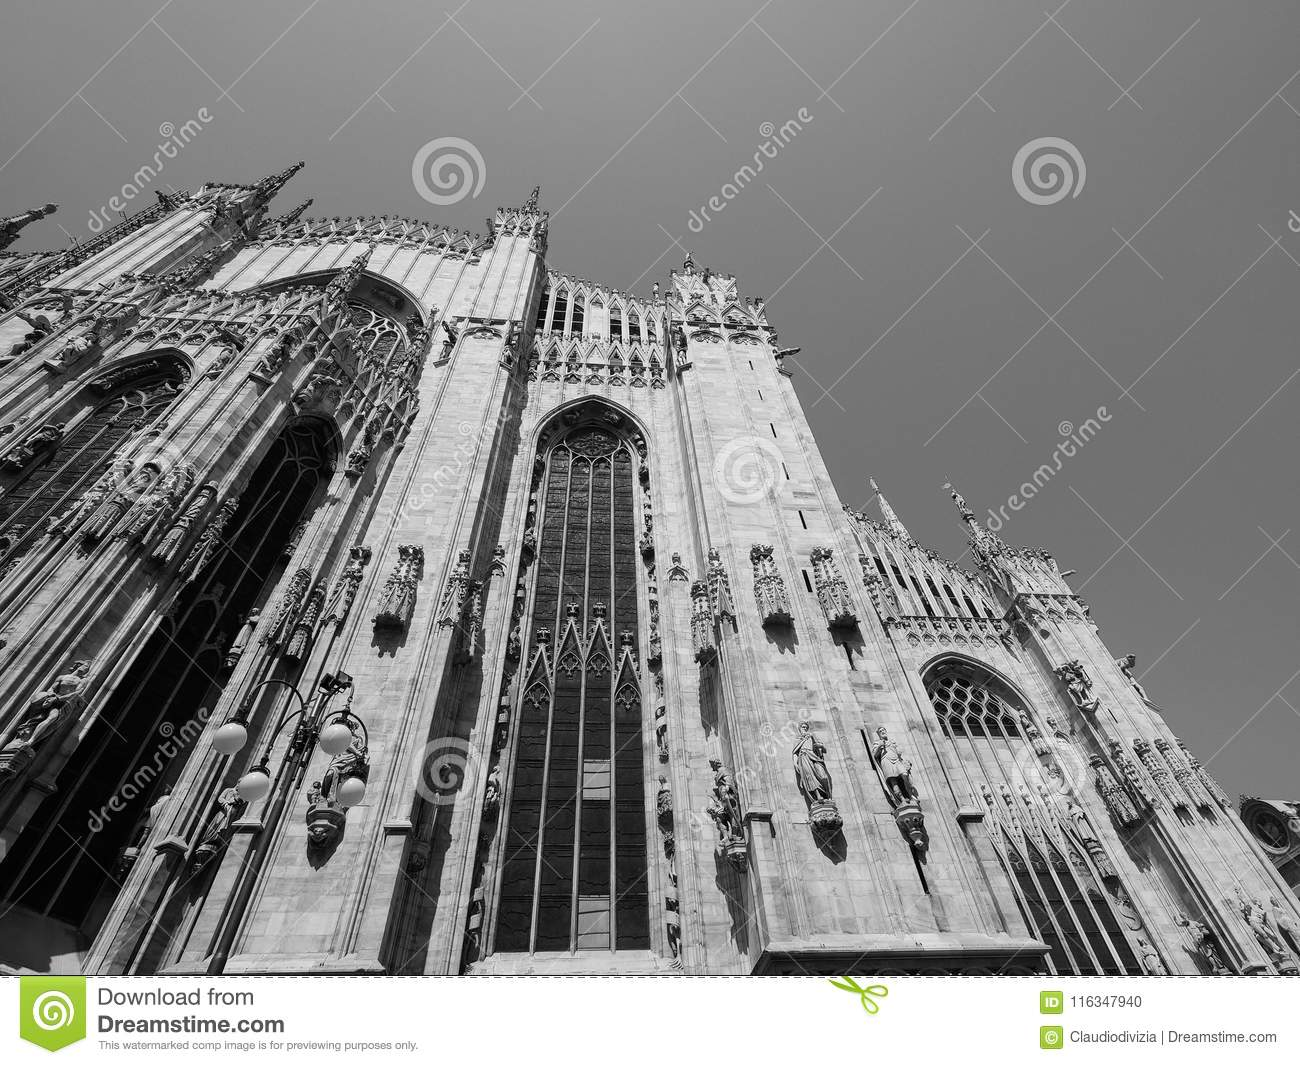 Duomo di milano meaning milan cathedral church in milan italy in black and white